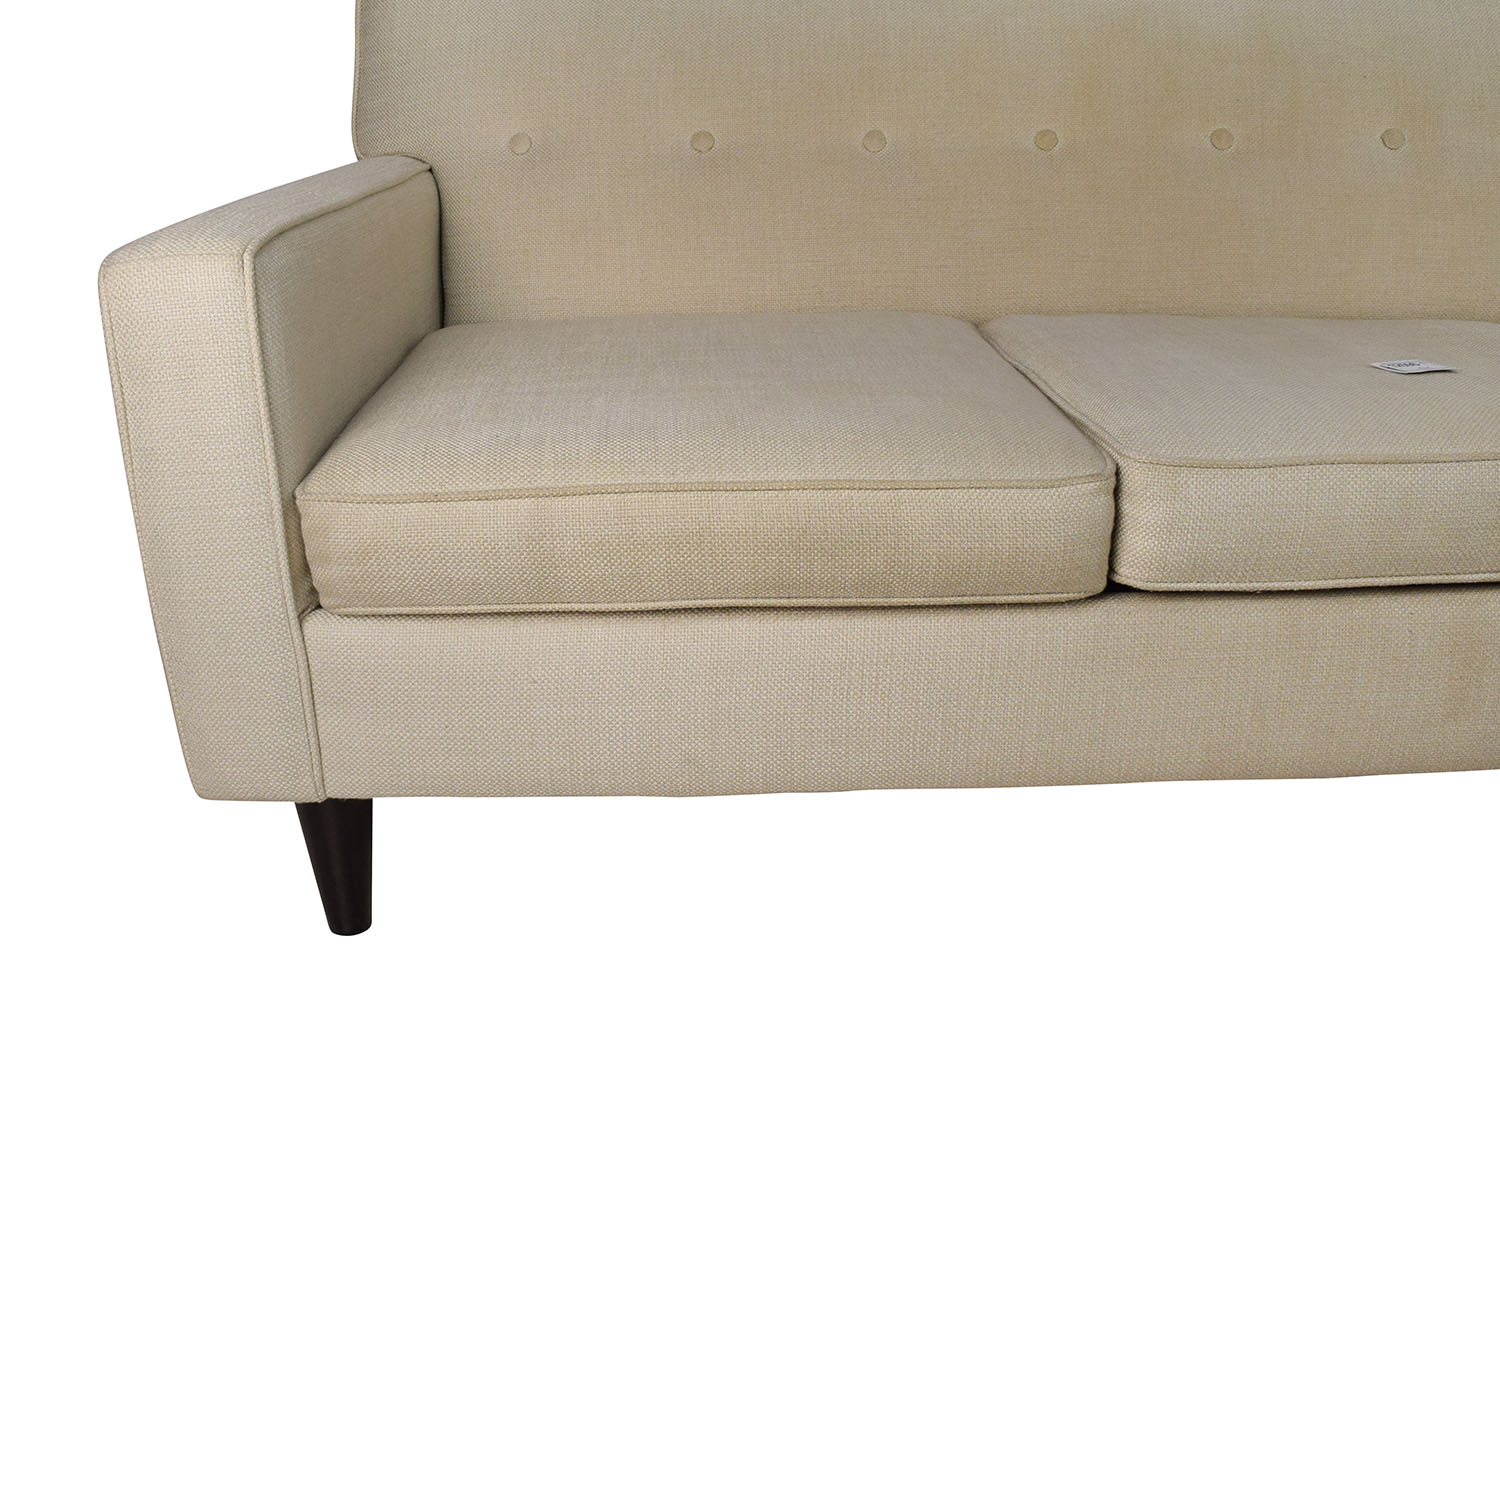 69 off max home furniture max home mid century sofa sofas for Mid century furniture online